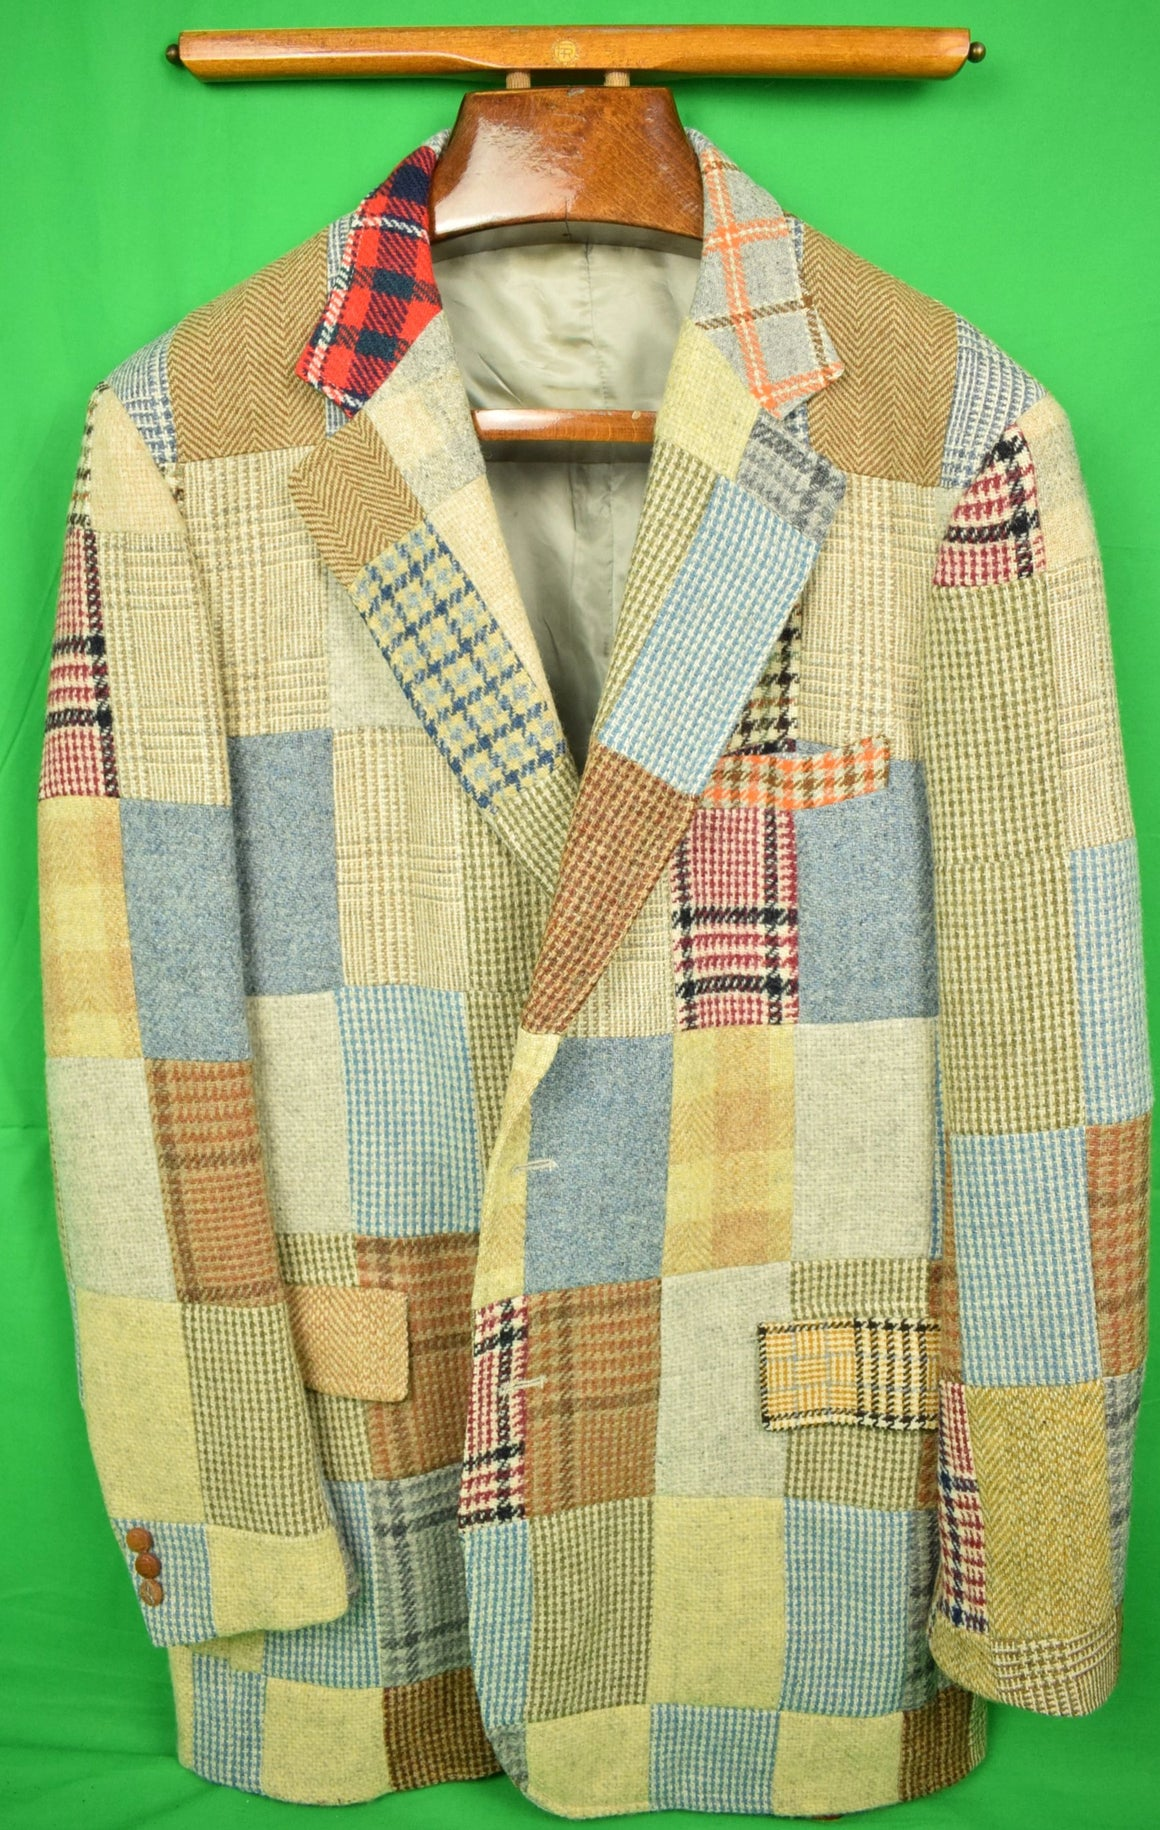 Corbin Patch Panel Tweed Sport Jacket Sz: 44L